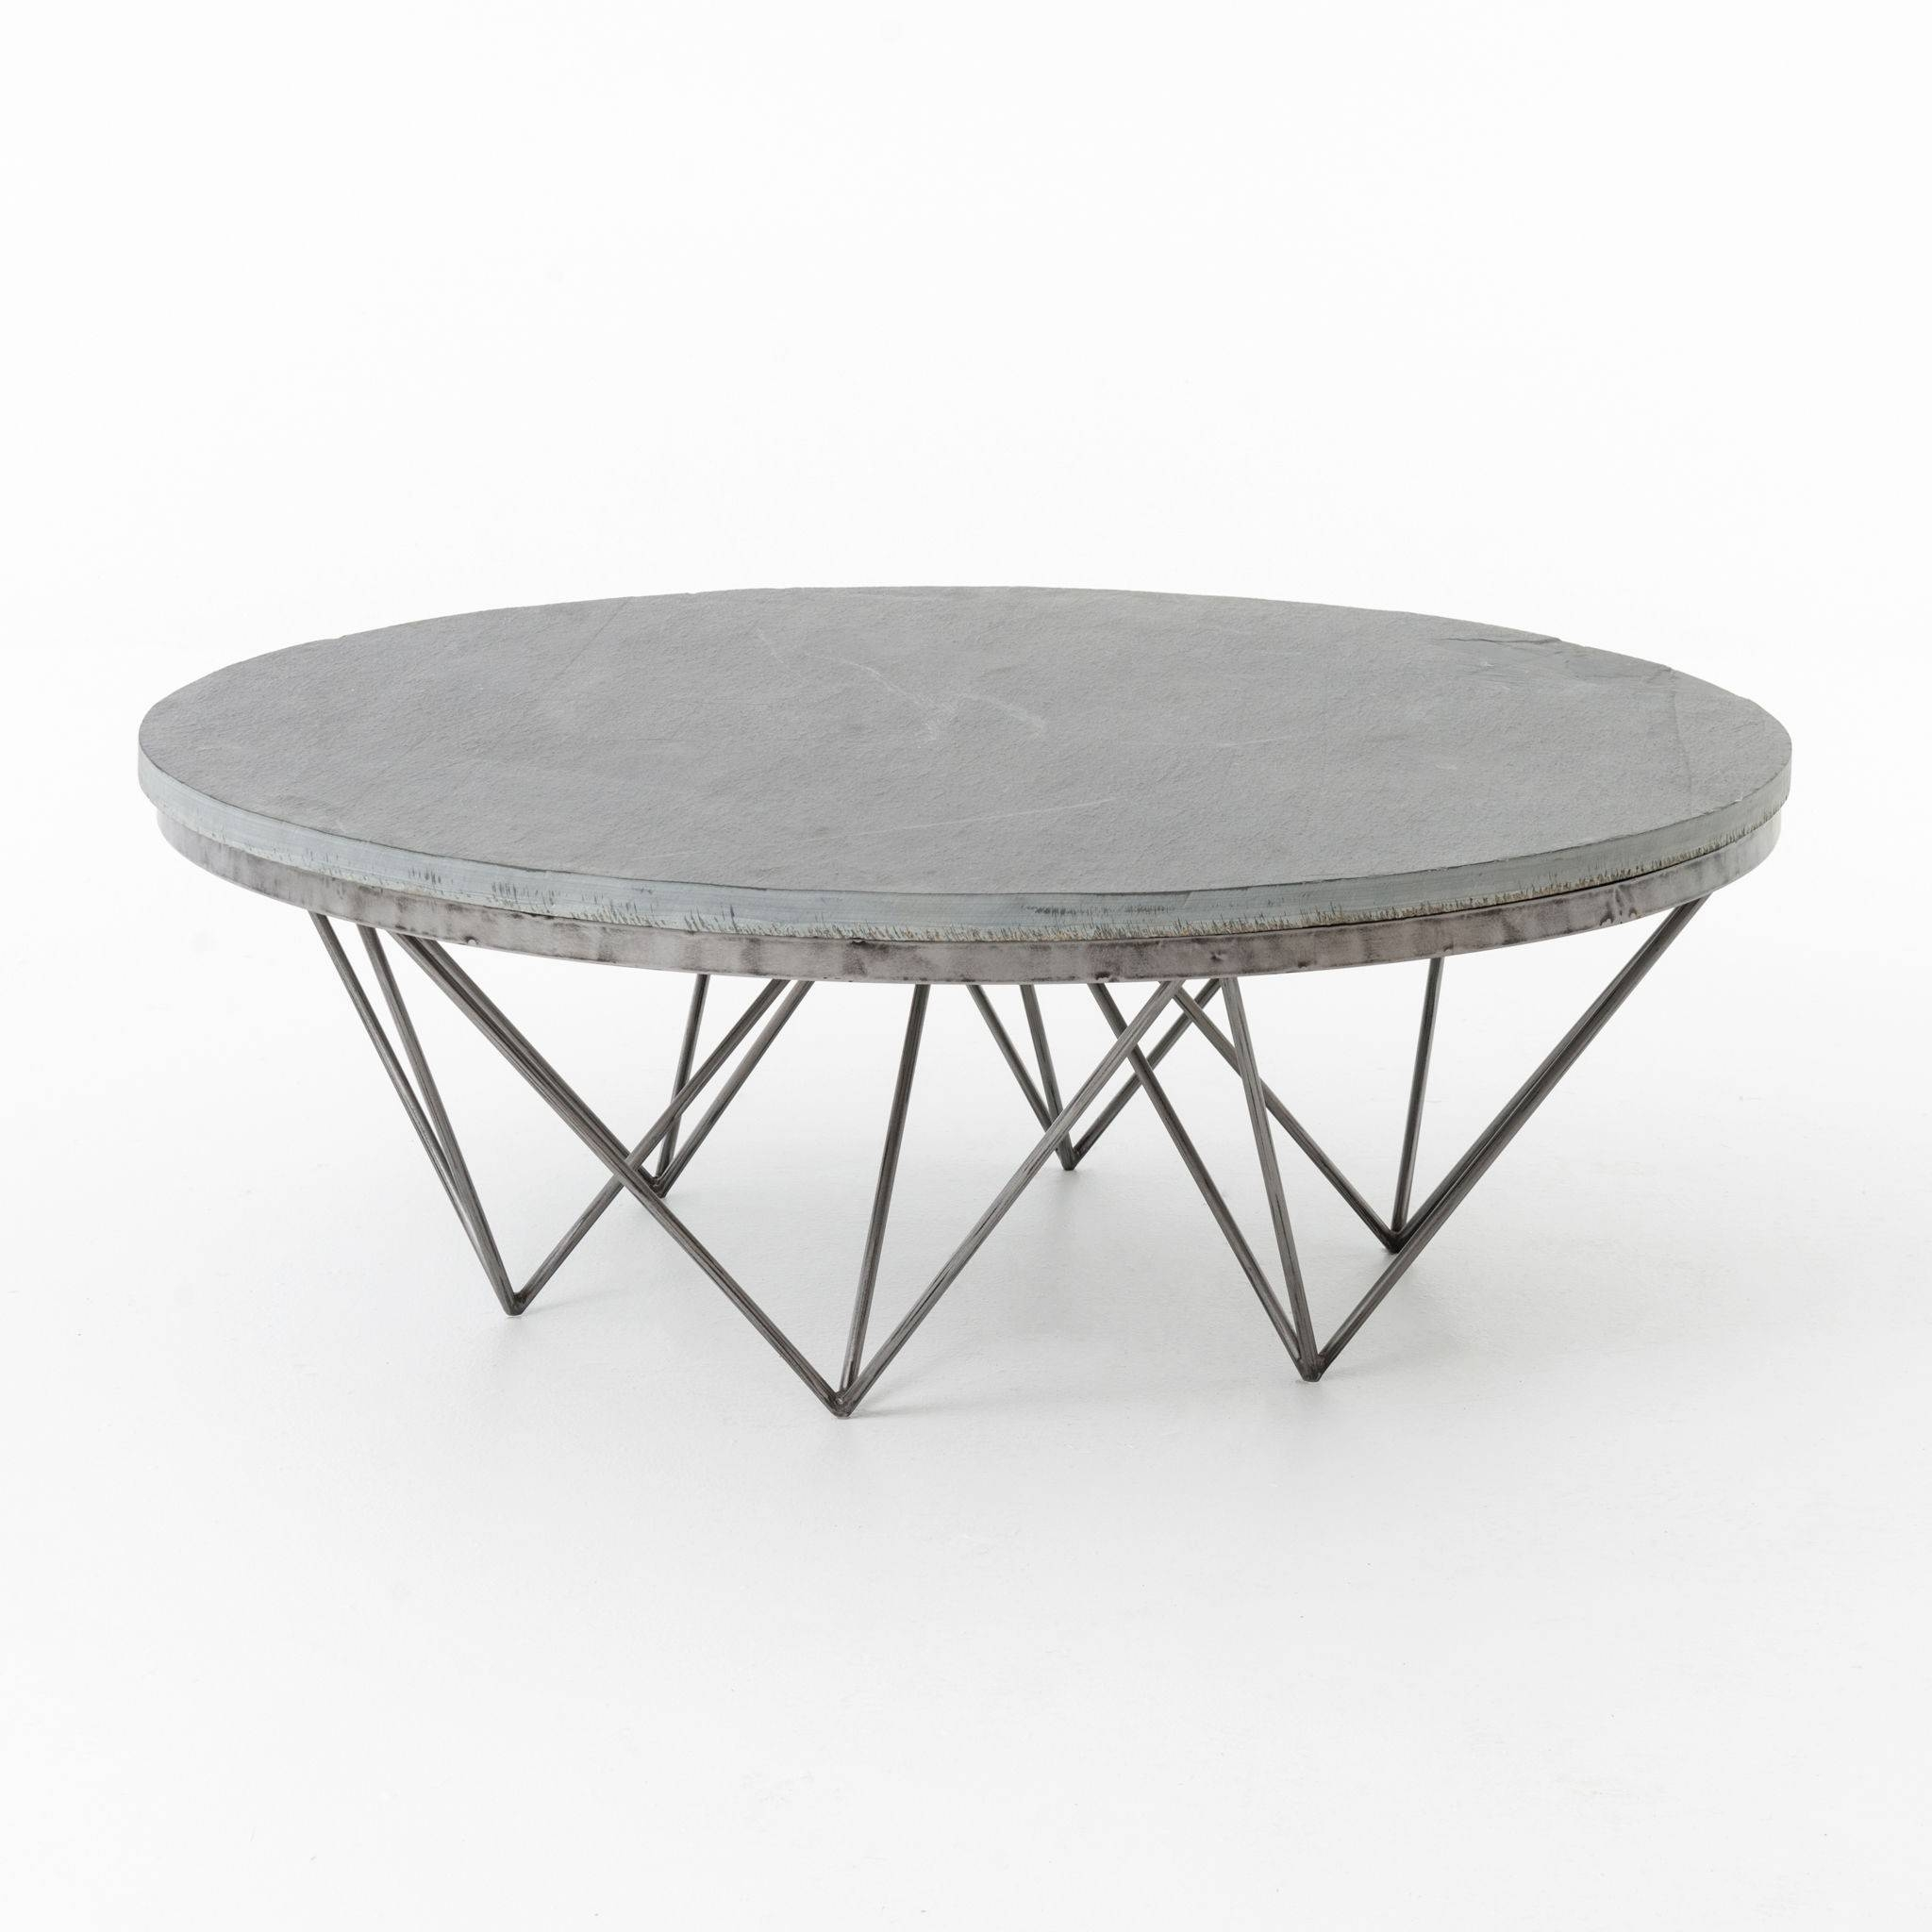 Finding The Right White Round Coffee Table Thementra within White Circle Coffee Tables (Image 14 of 30)